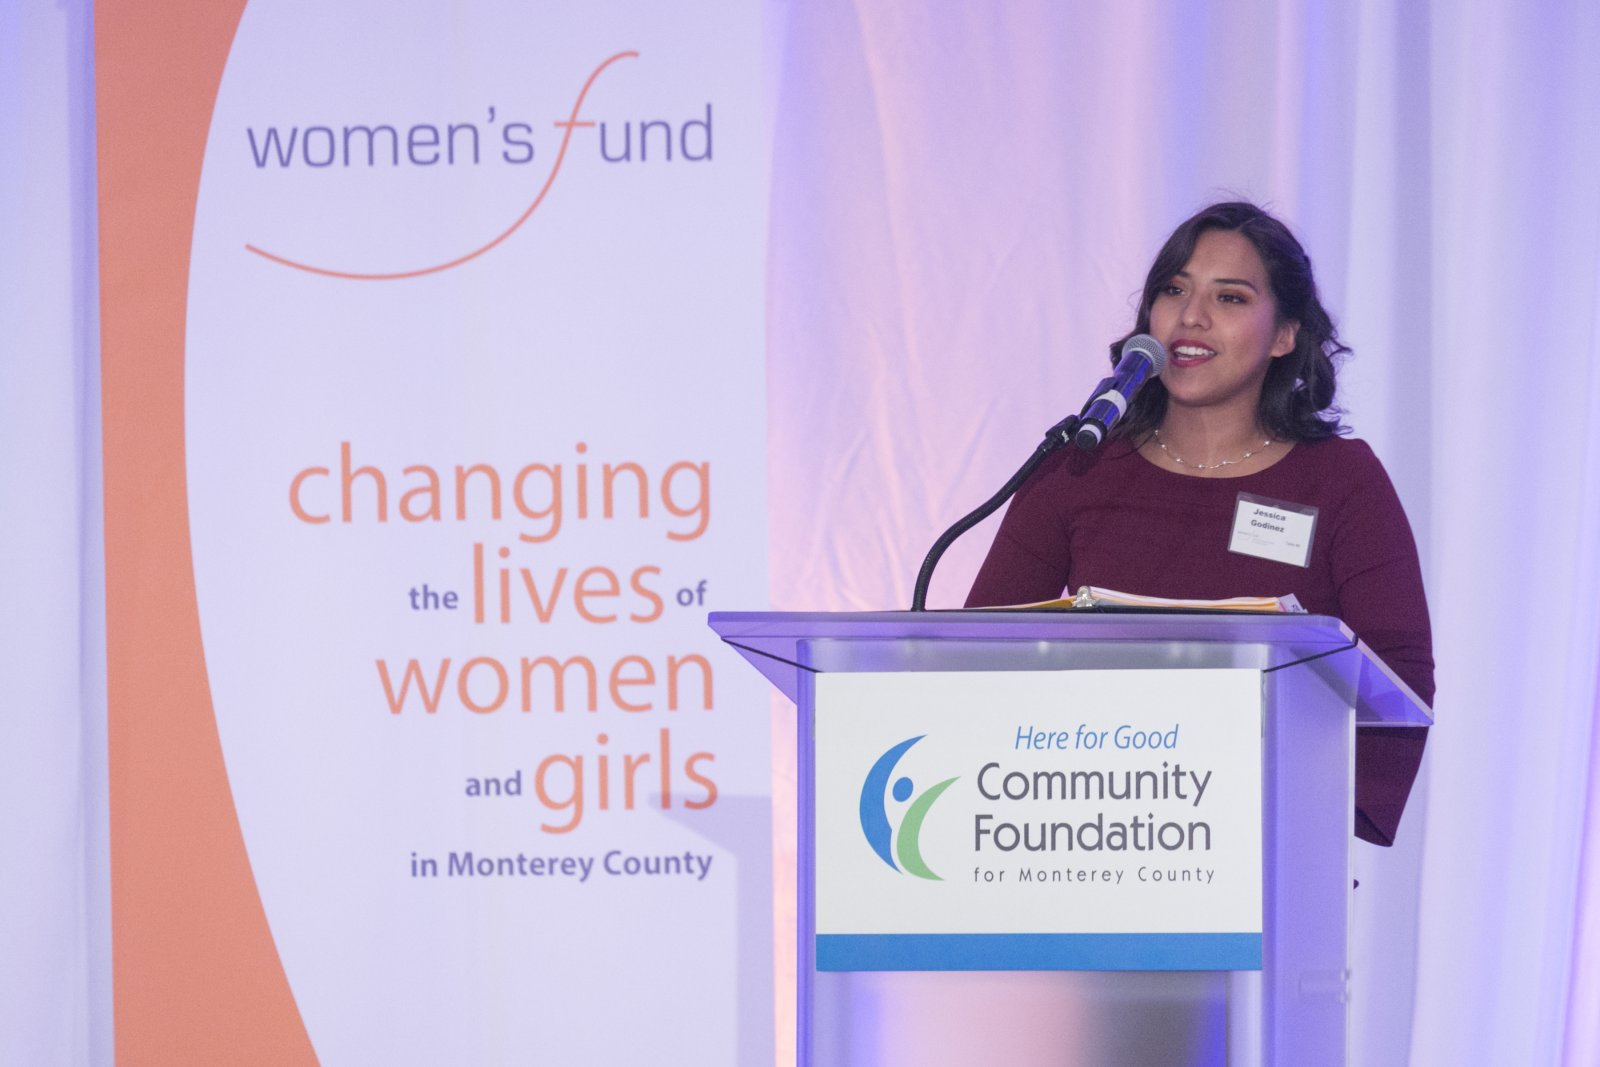 Community Foundation Women's Fund Focuses on Women's Leadership and Empowerment